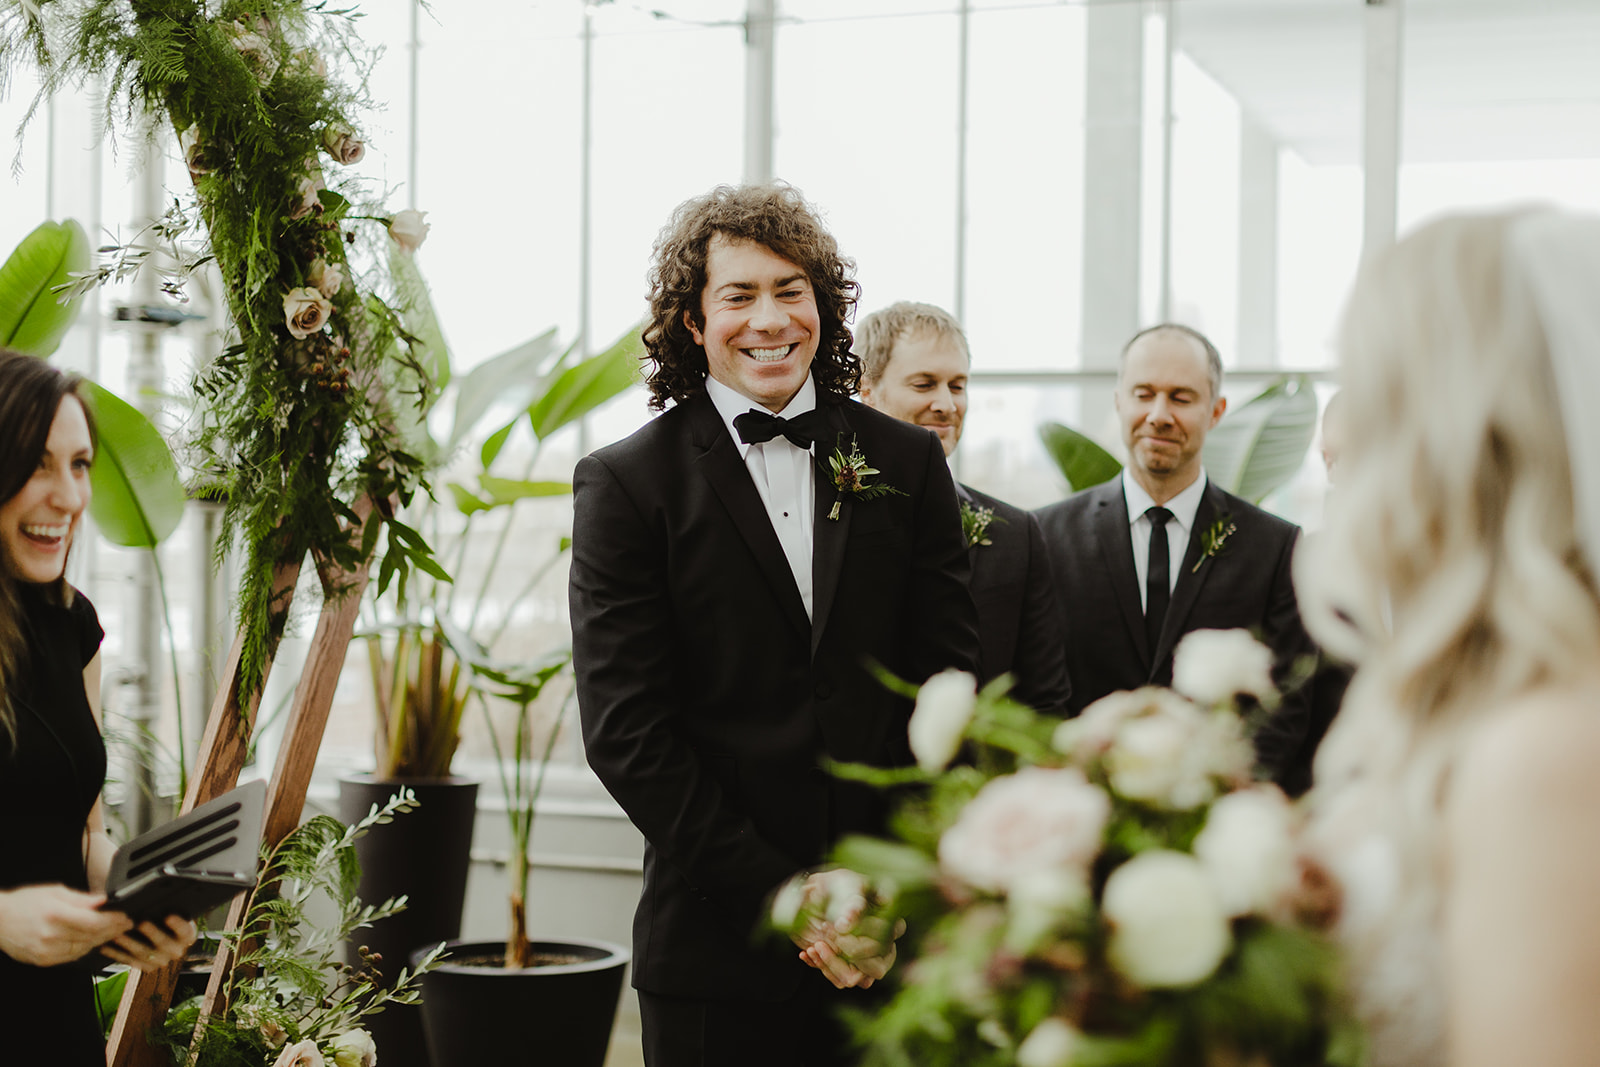 A groom smiling at his bride and she walks down the aisle